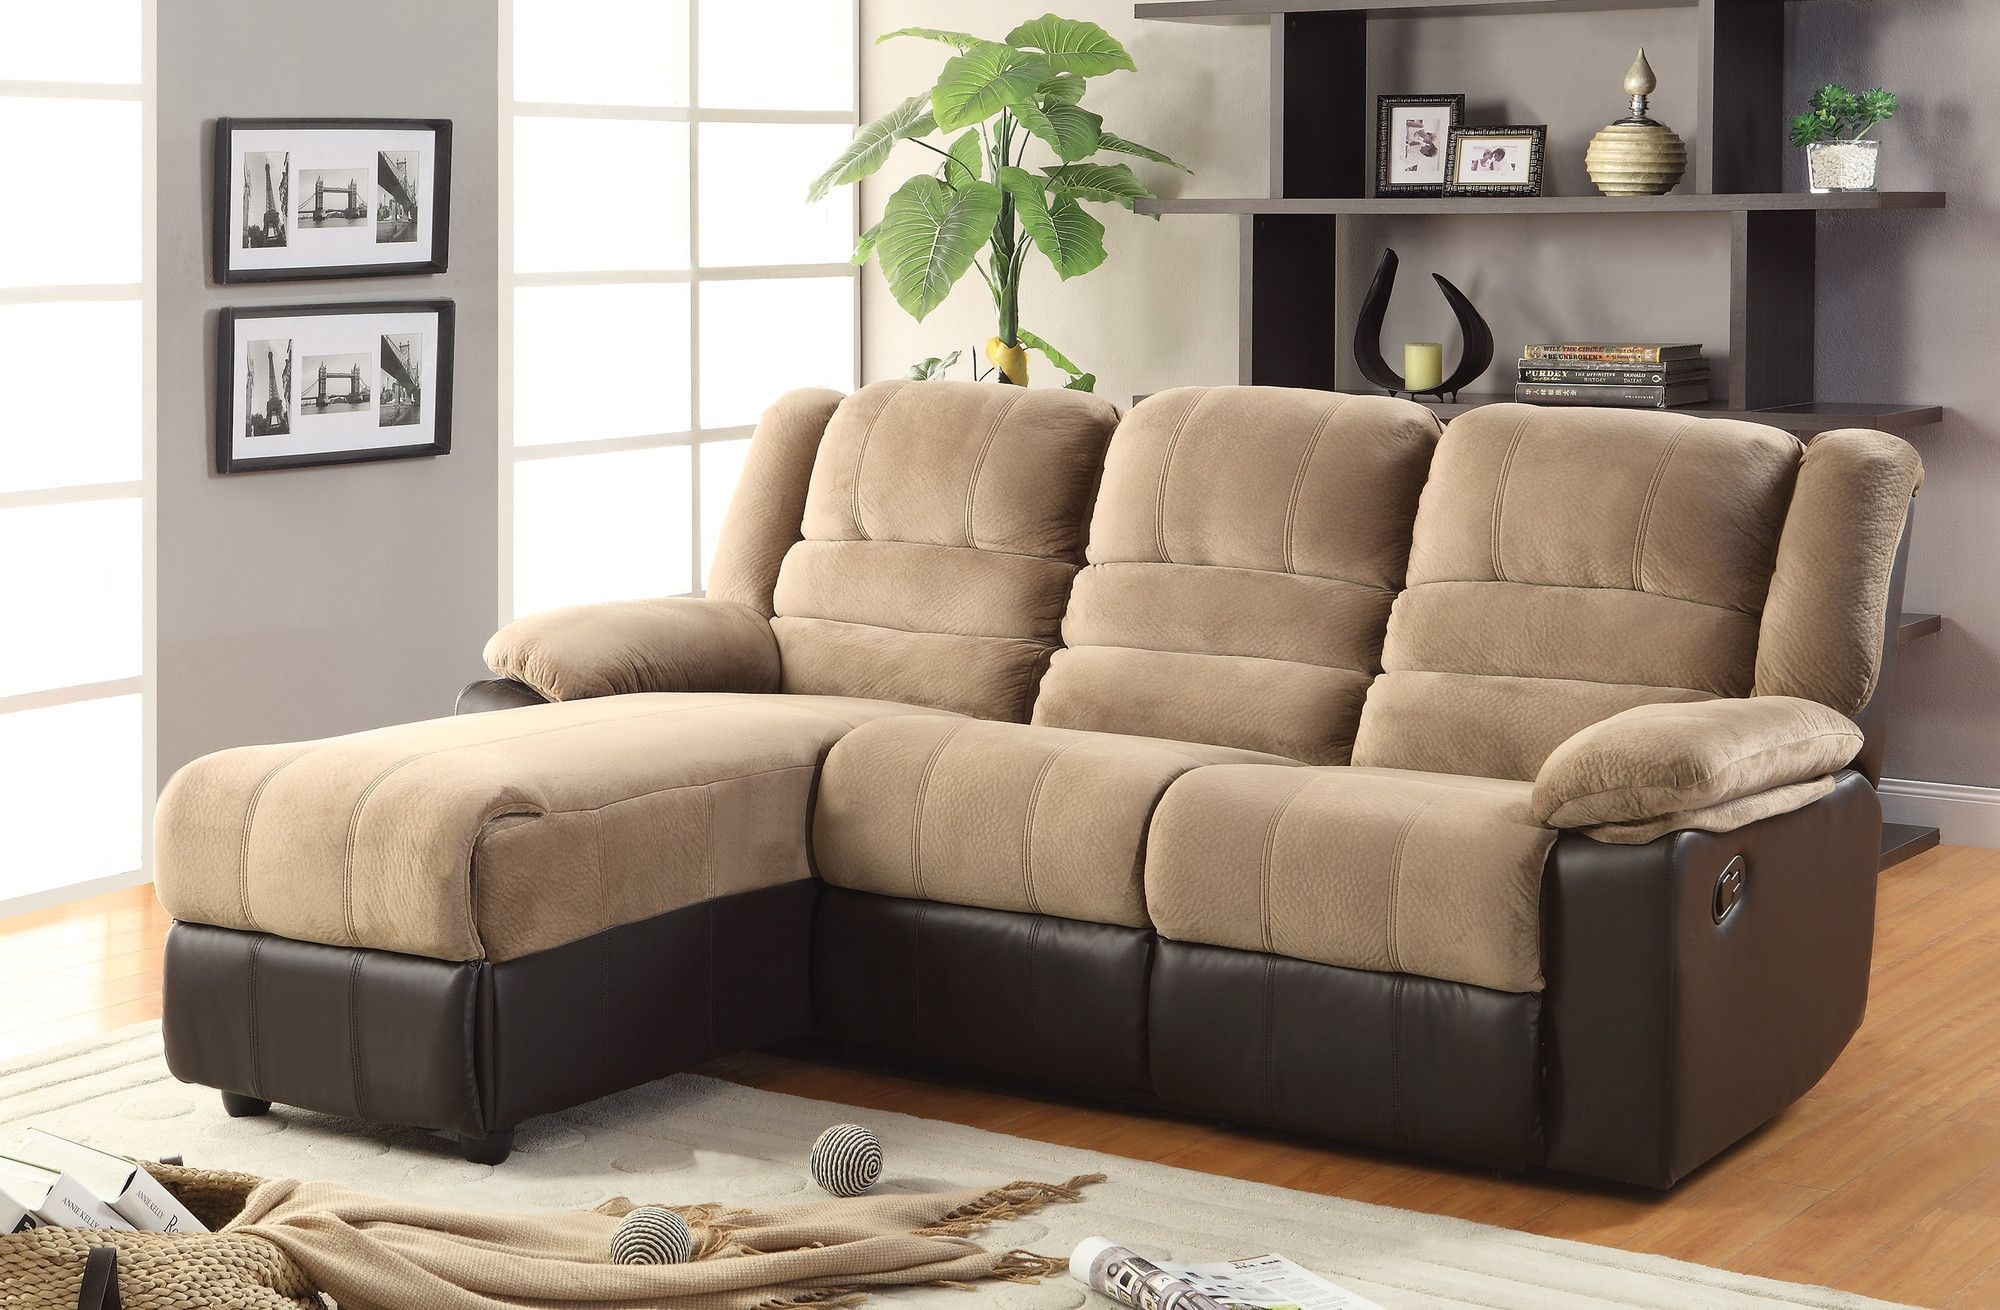 small sectional sofa with recliner visual hunt rh visualhunt com recliner sofa sectionals electric recliner chaise sofa